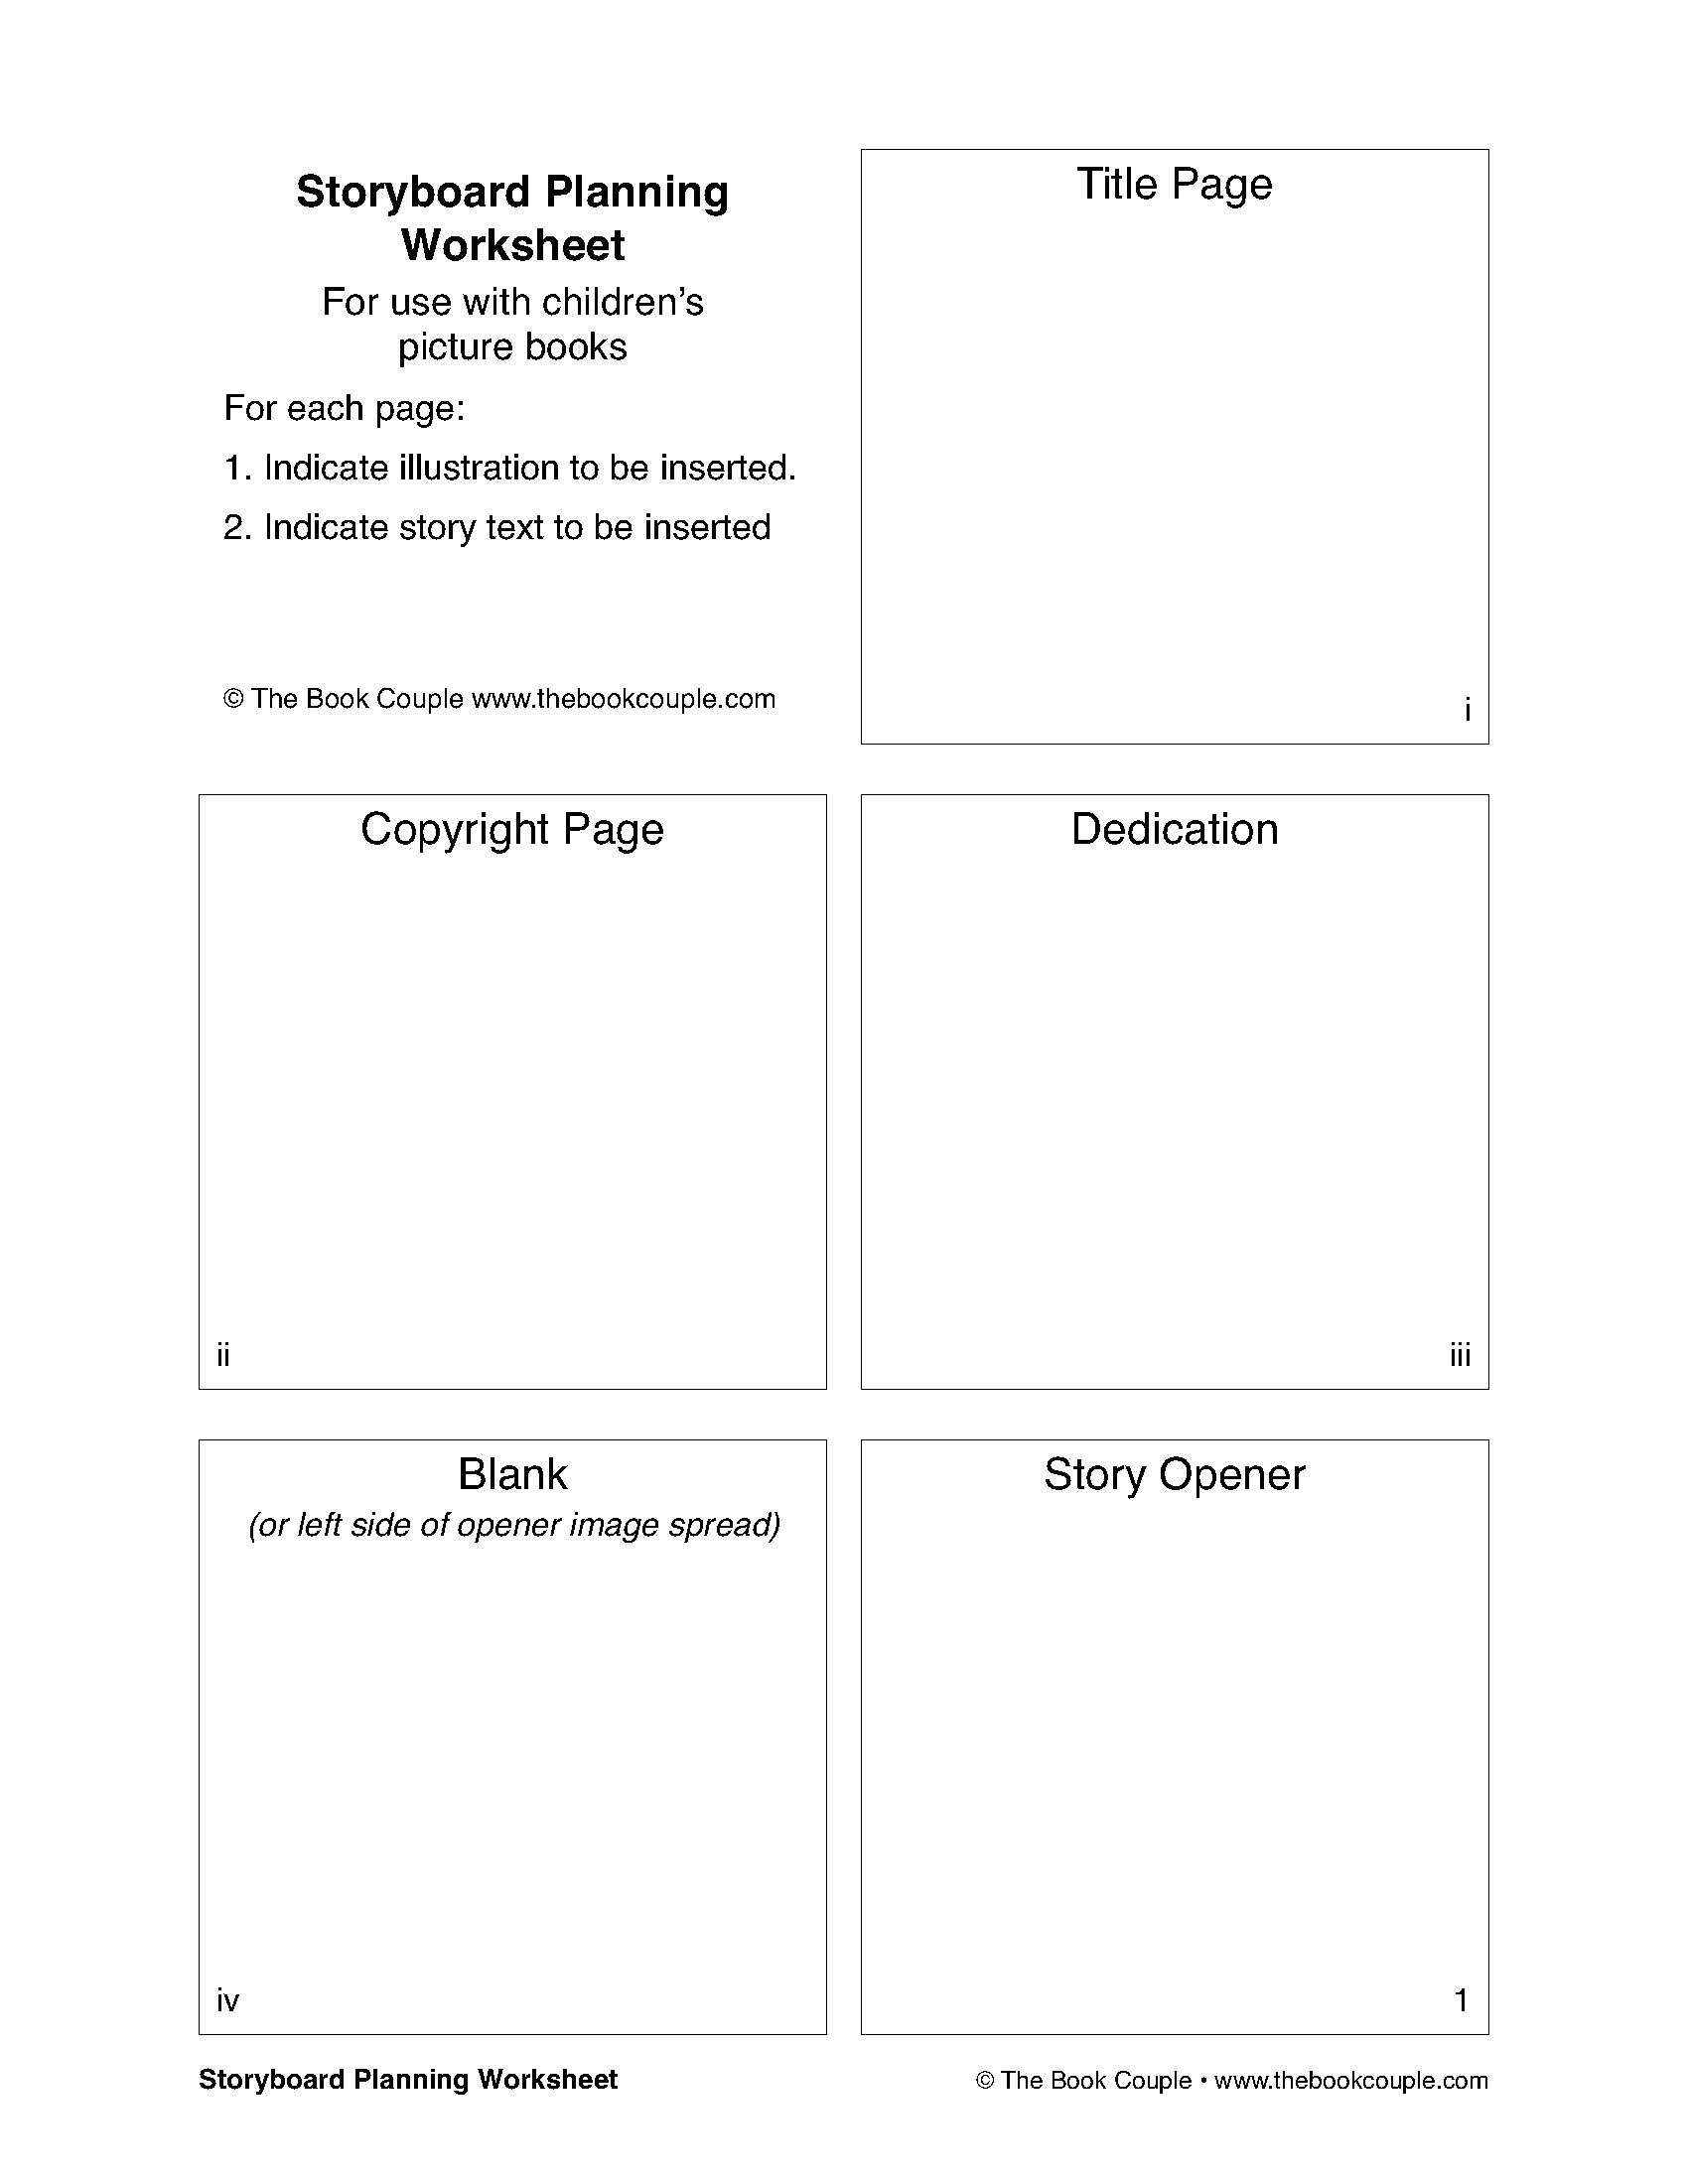 Storyboard Planning Worksheet For Use With Children S